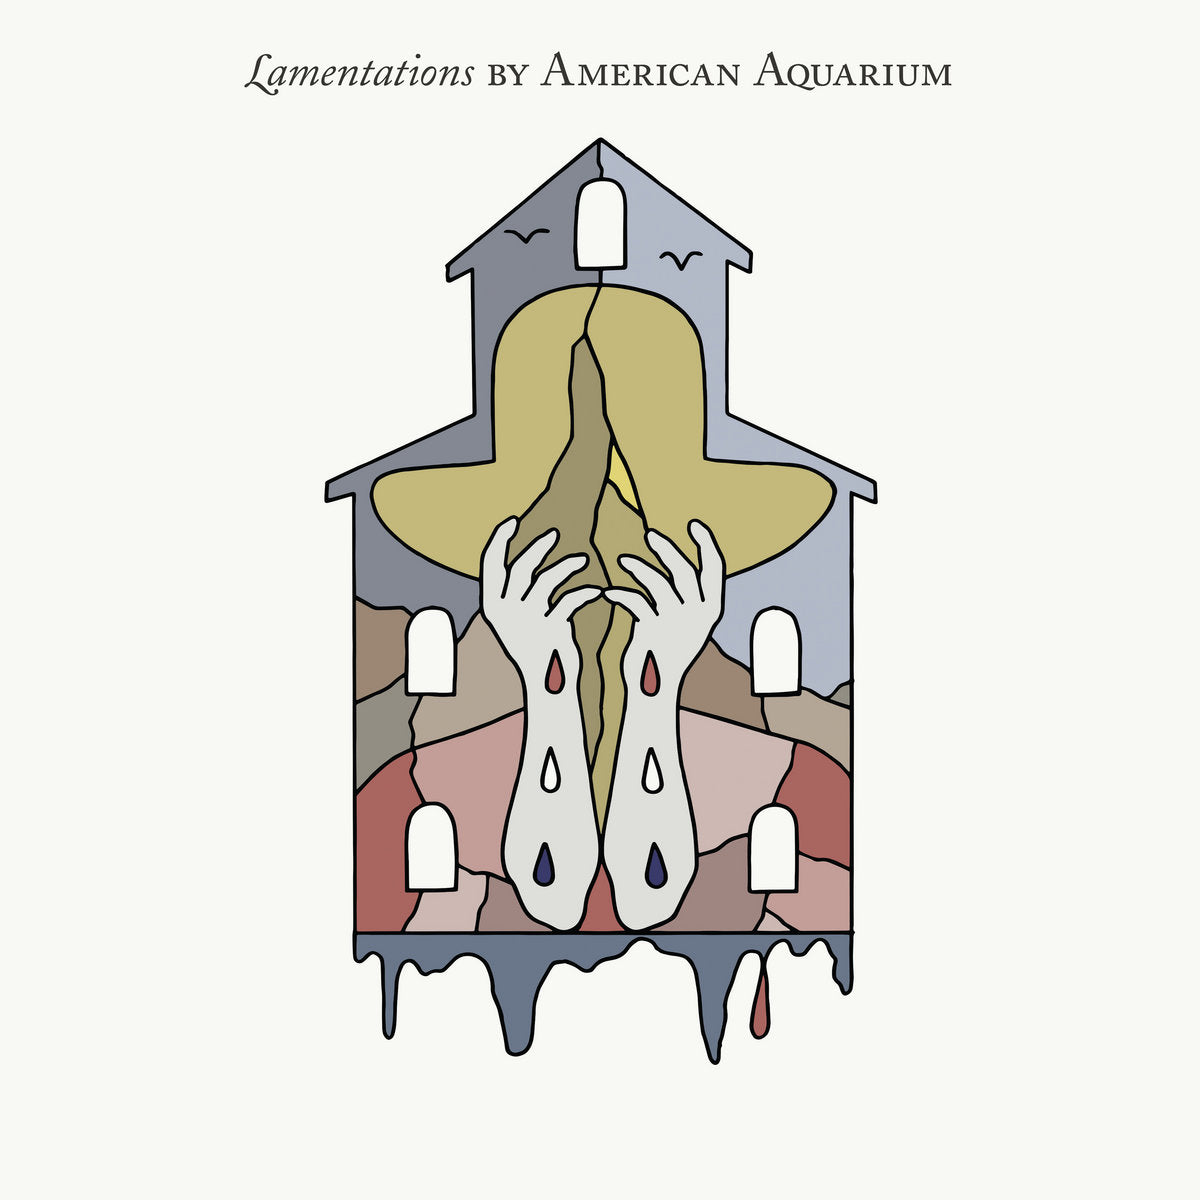 American Aquarium - Lamentations LP (Ltd Indie Exclusive Silver Vinyl Edition)